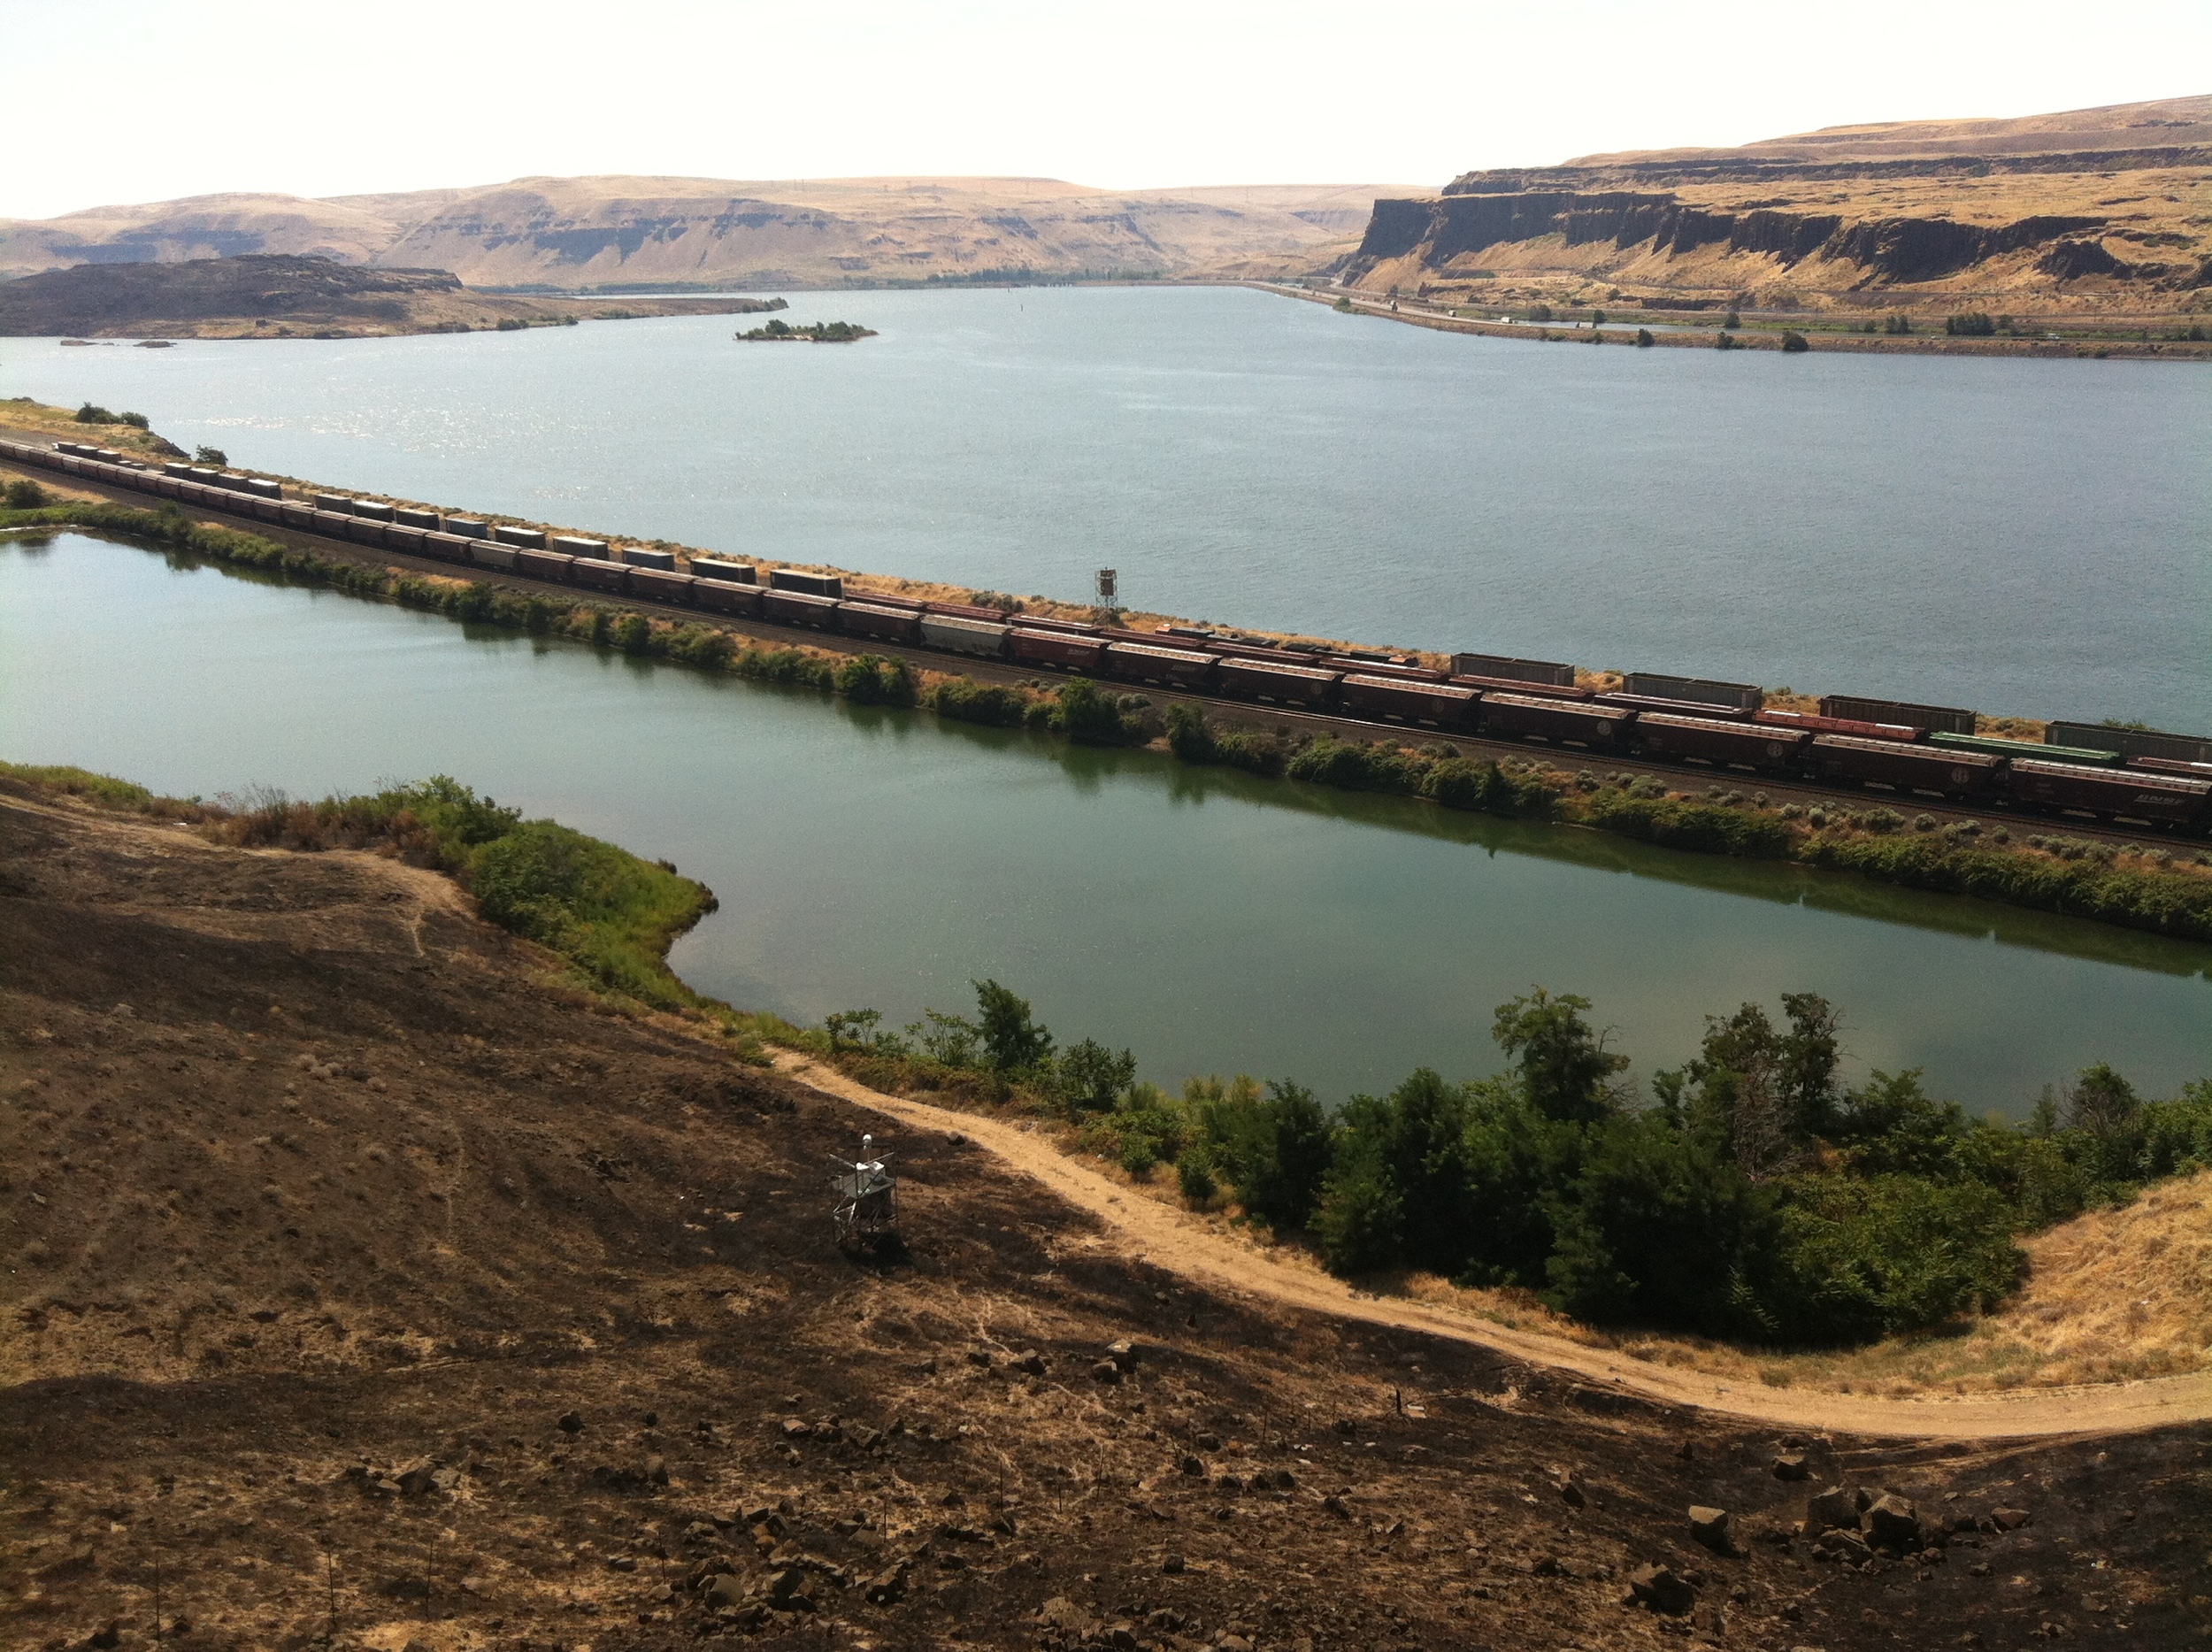 View eastward of the Columbia River from the railroad town of Wishram, Washington.